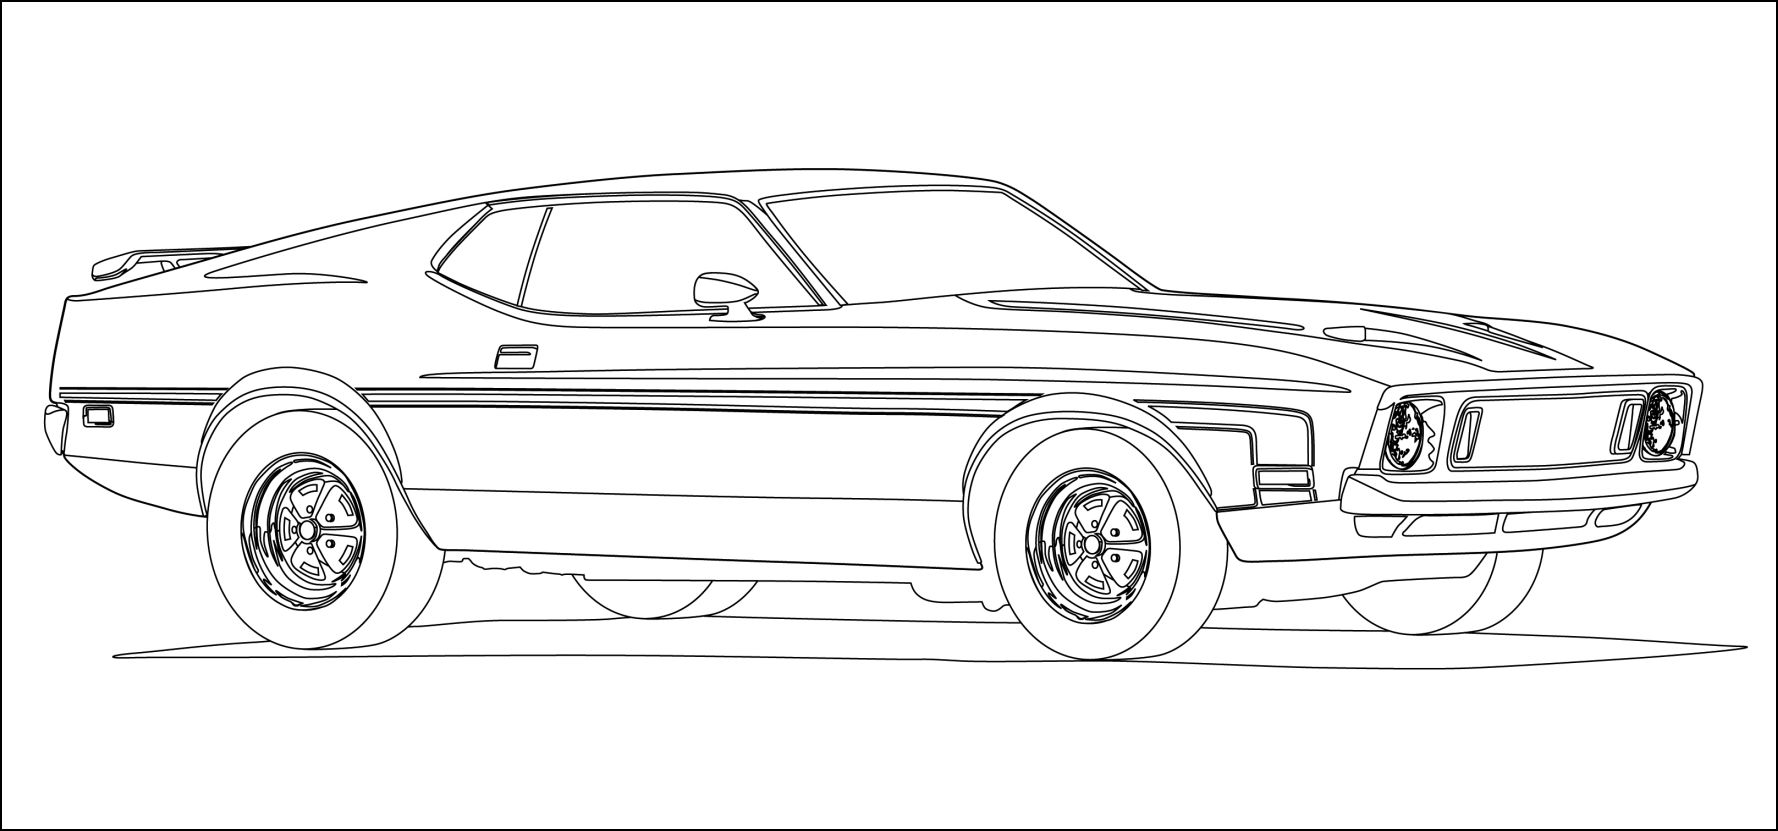 2011 Ford Mustang Coloring Pages